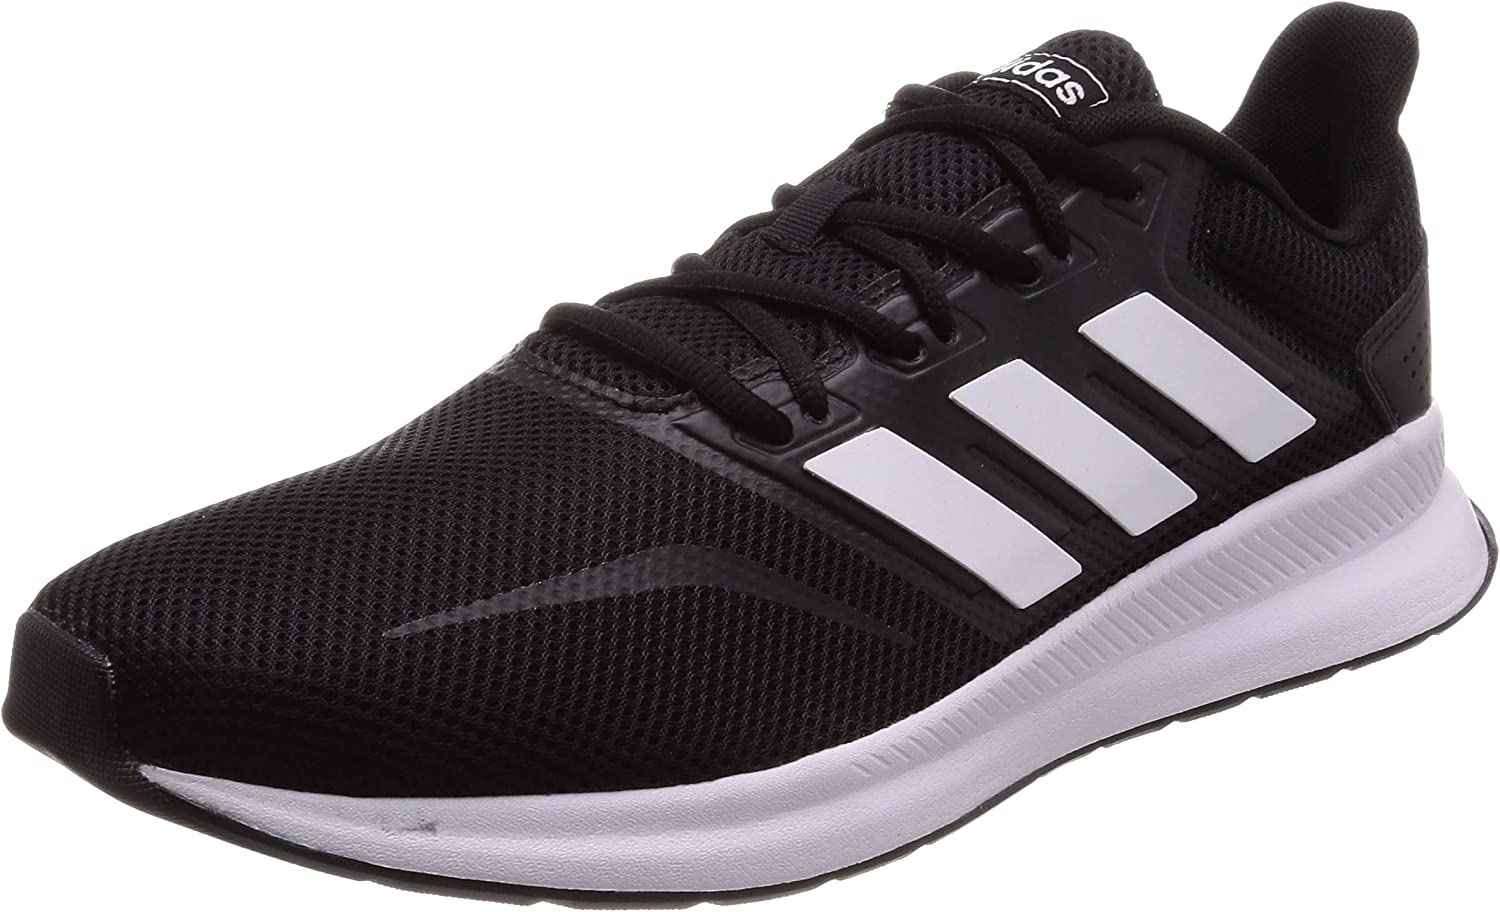 Adidas Falcon, Zapatillas de Trail Running para Hombre, Negro/Blanco (Core Black/Cloud White F36199), 43 1/3 EU: Amazon.es: Zapatos y complementos